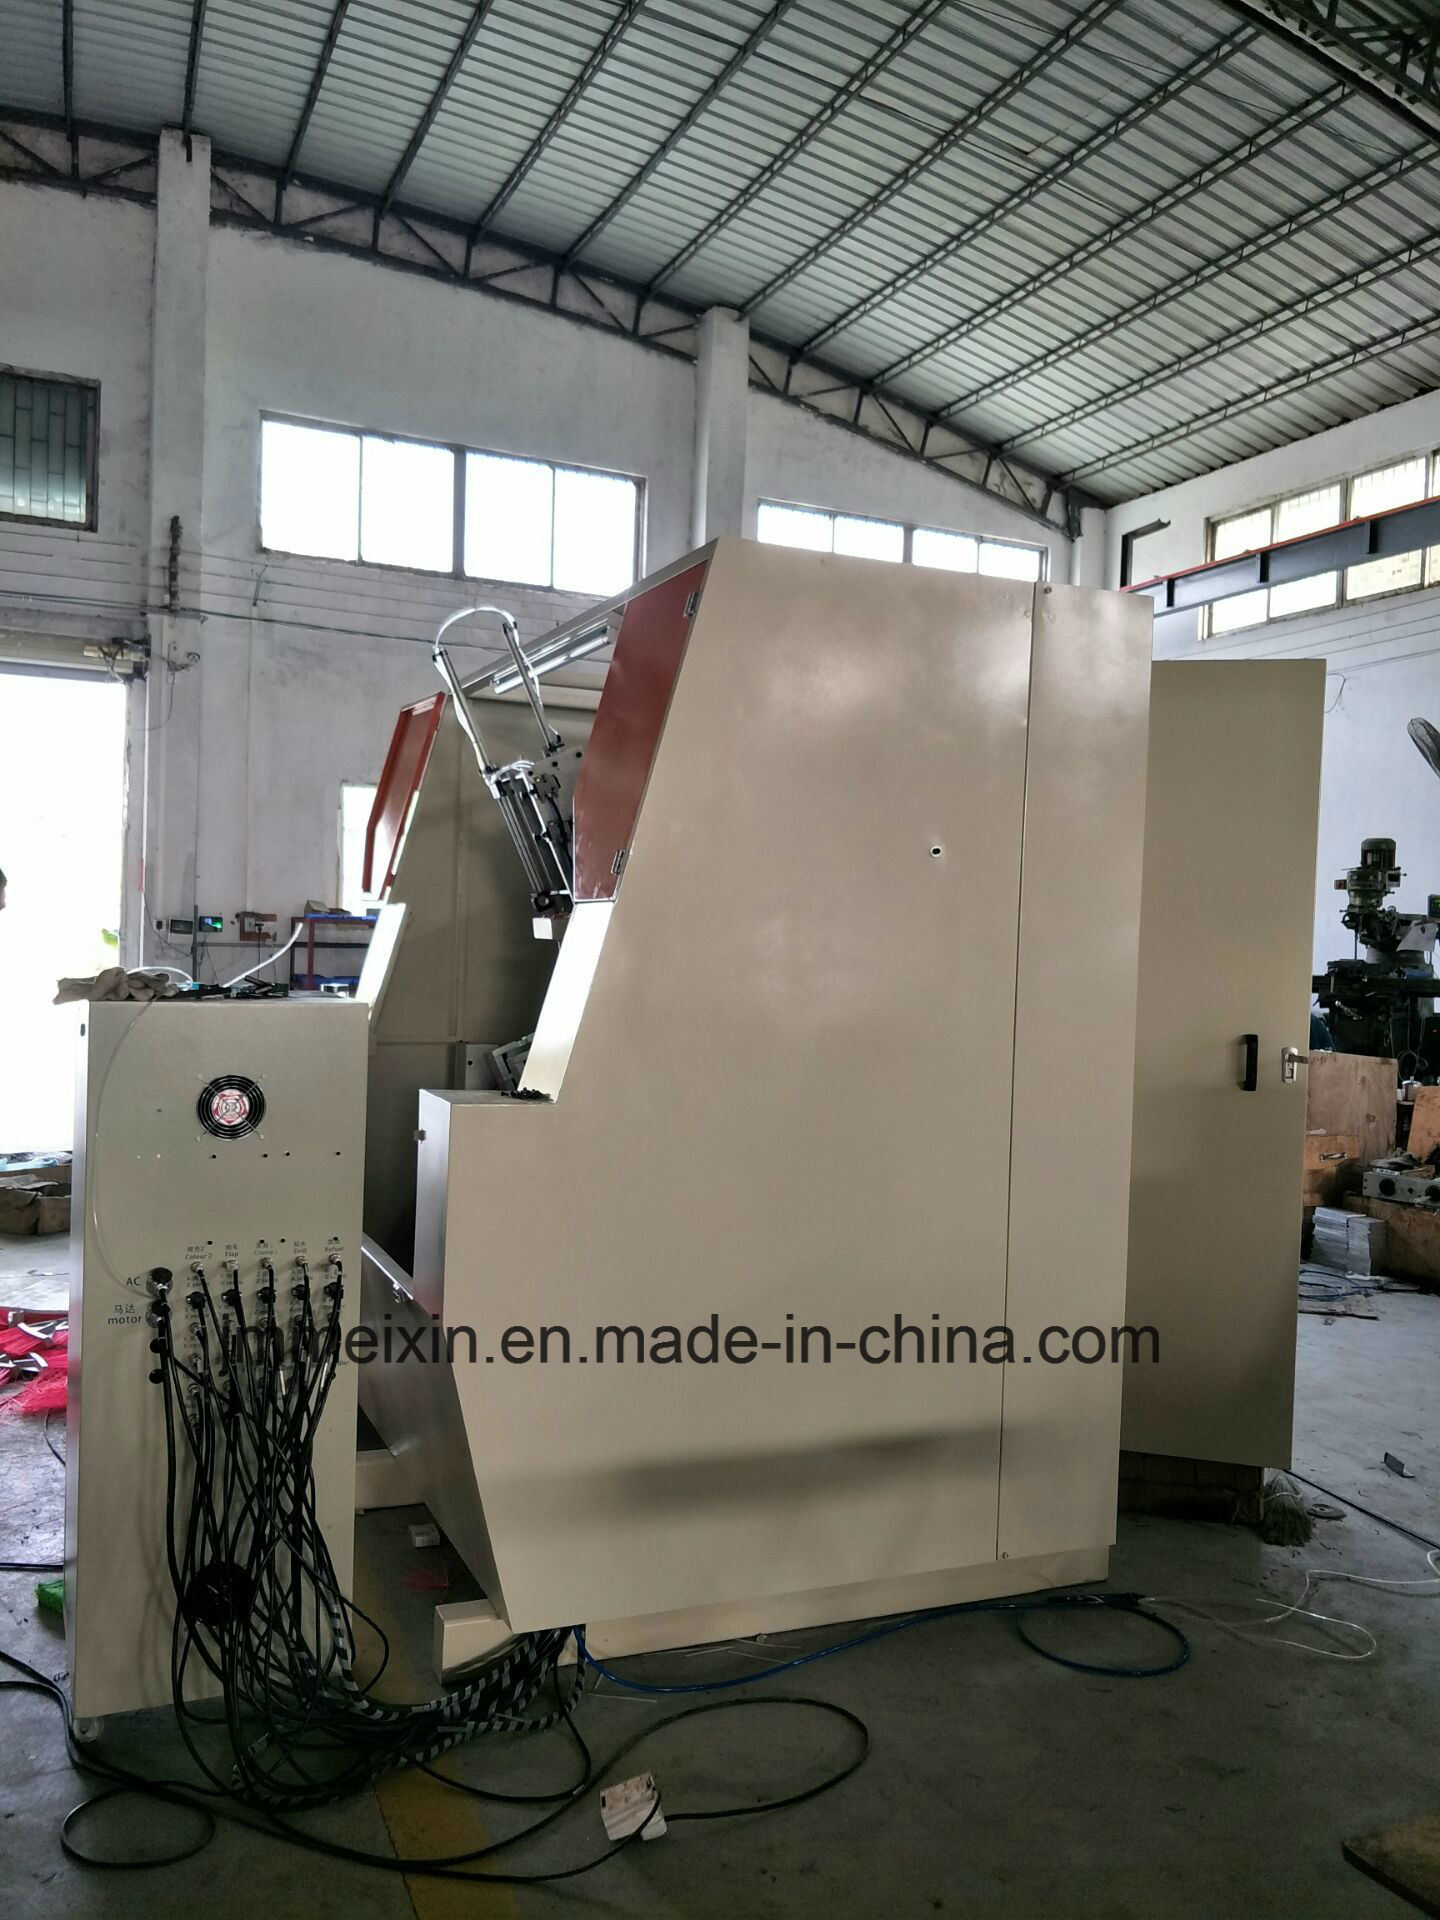 High Speed 5 Axis 3 Heads CNC Drilling and Tufting Brush Making Machine/Broom Making Machine (2 drilling and 1 tufting)